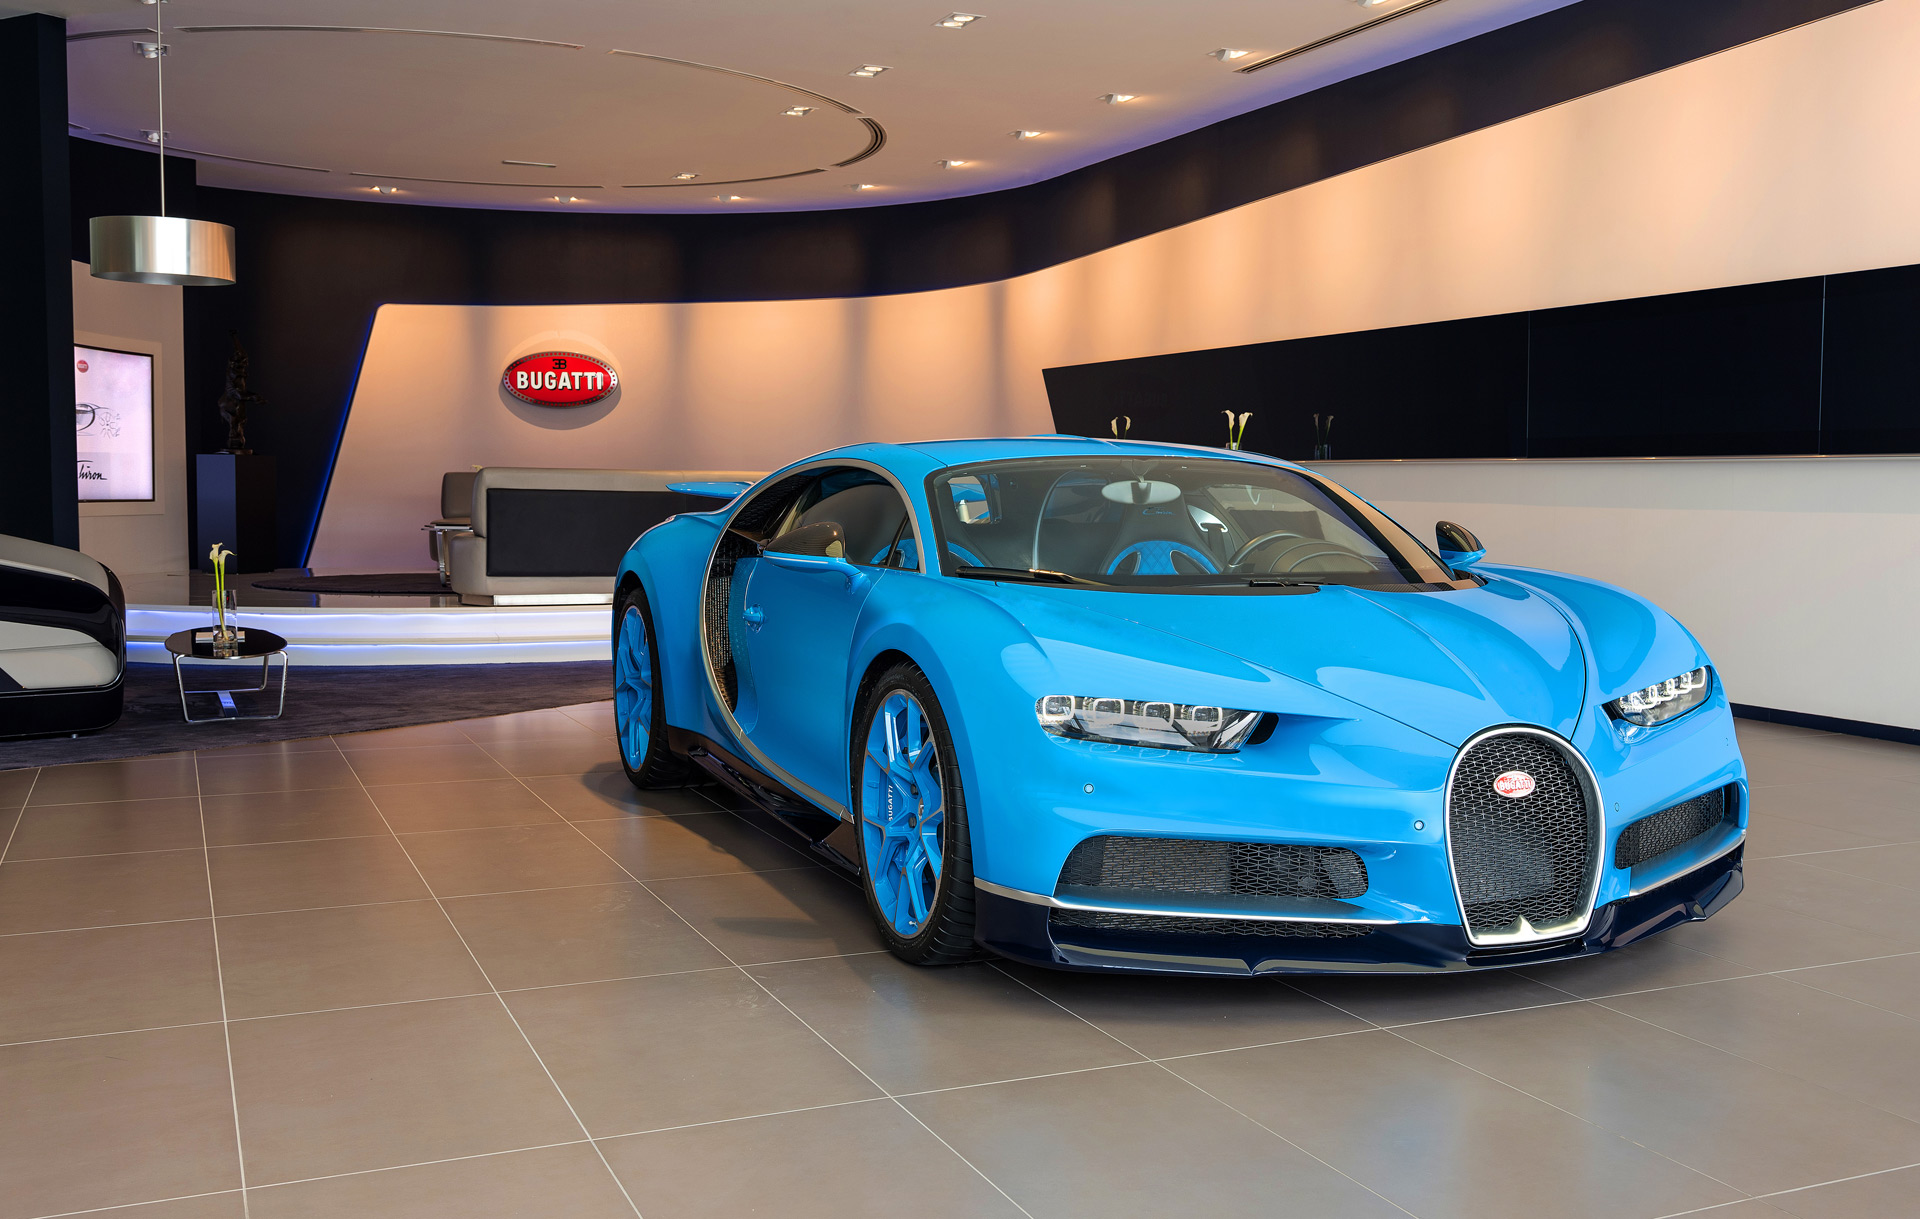 You Ll Now Find Bugatti S Biggest Showroom In Dubai